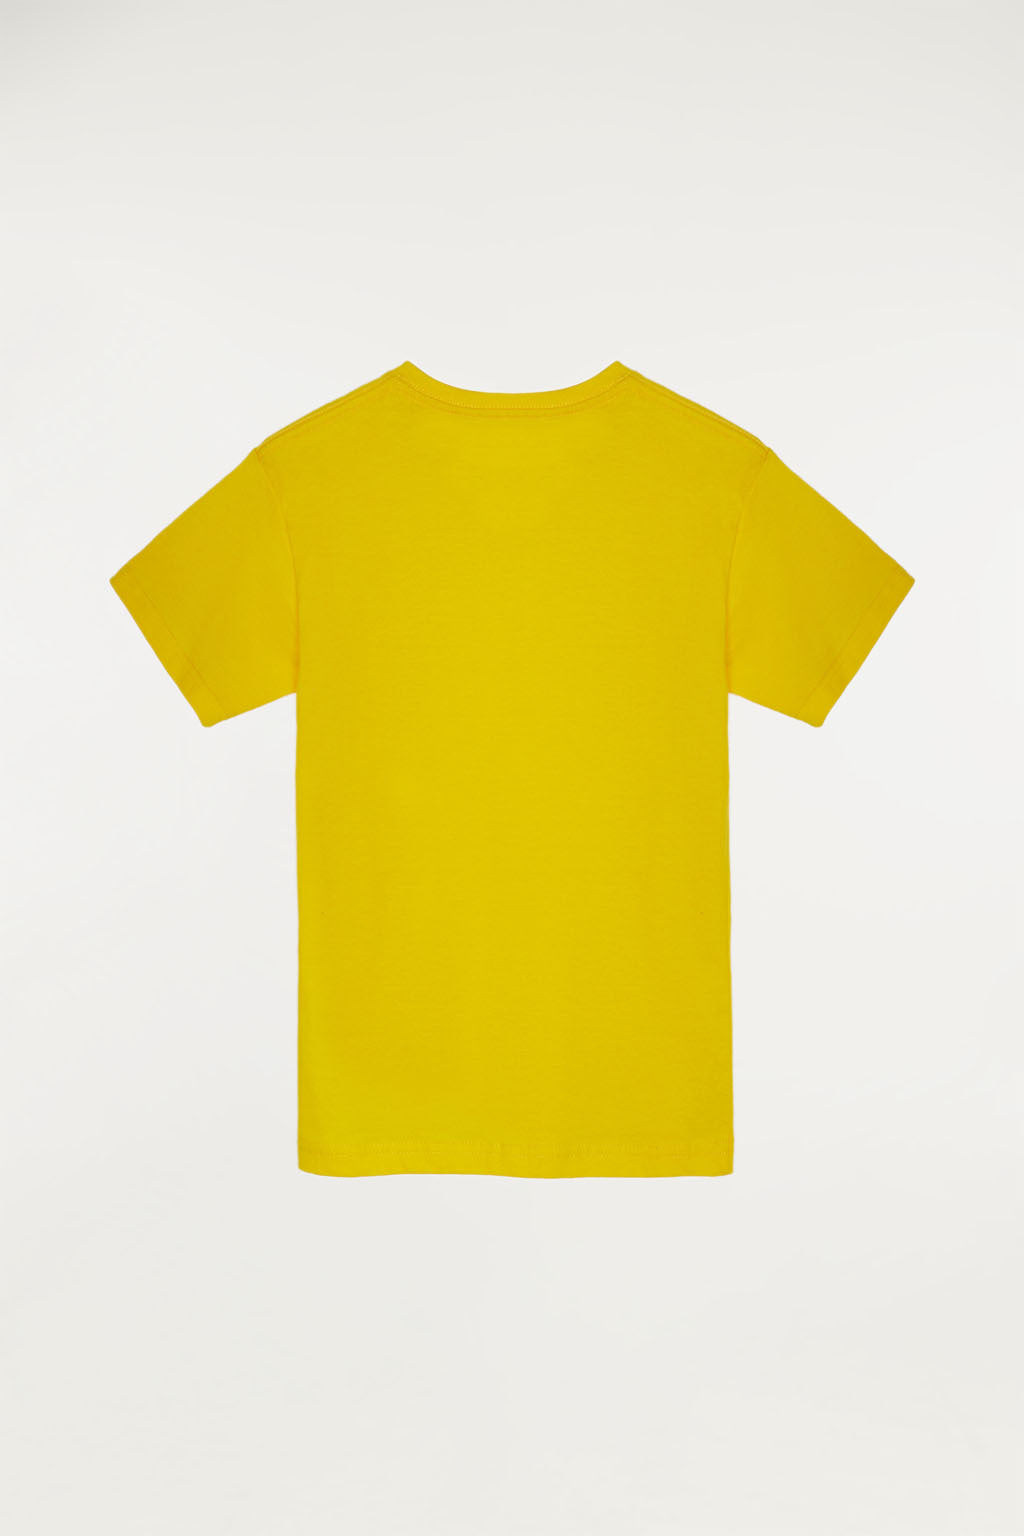 Yellow T-shirt with bi-coloured print